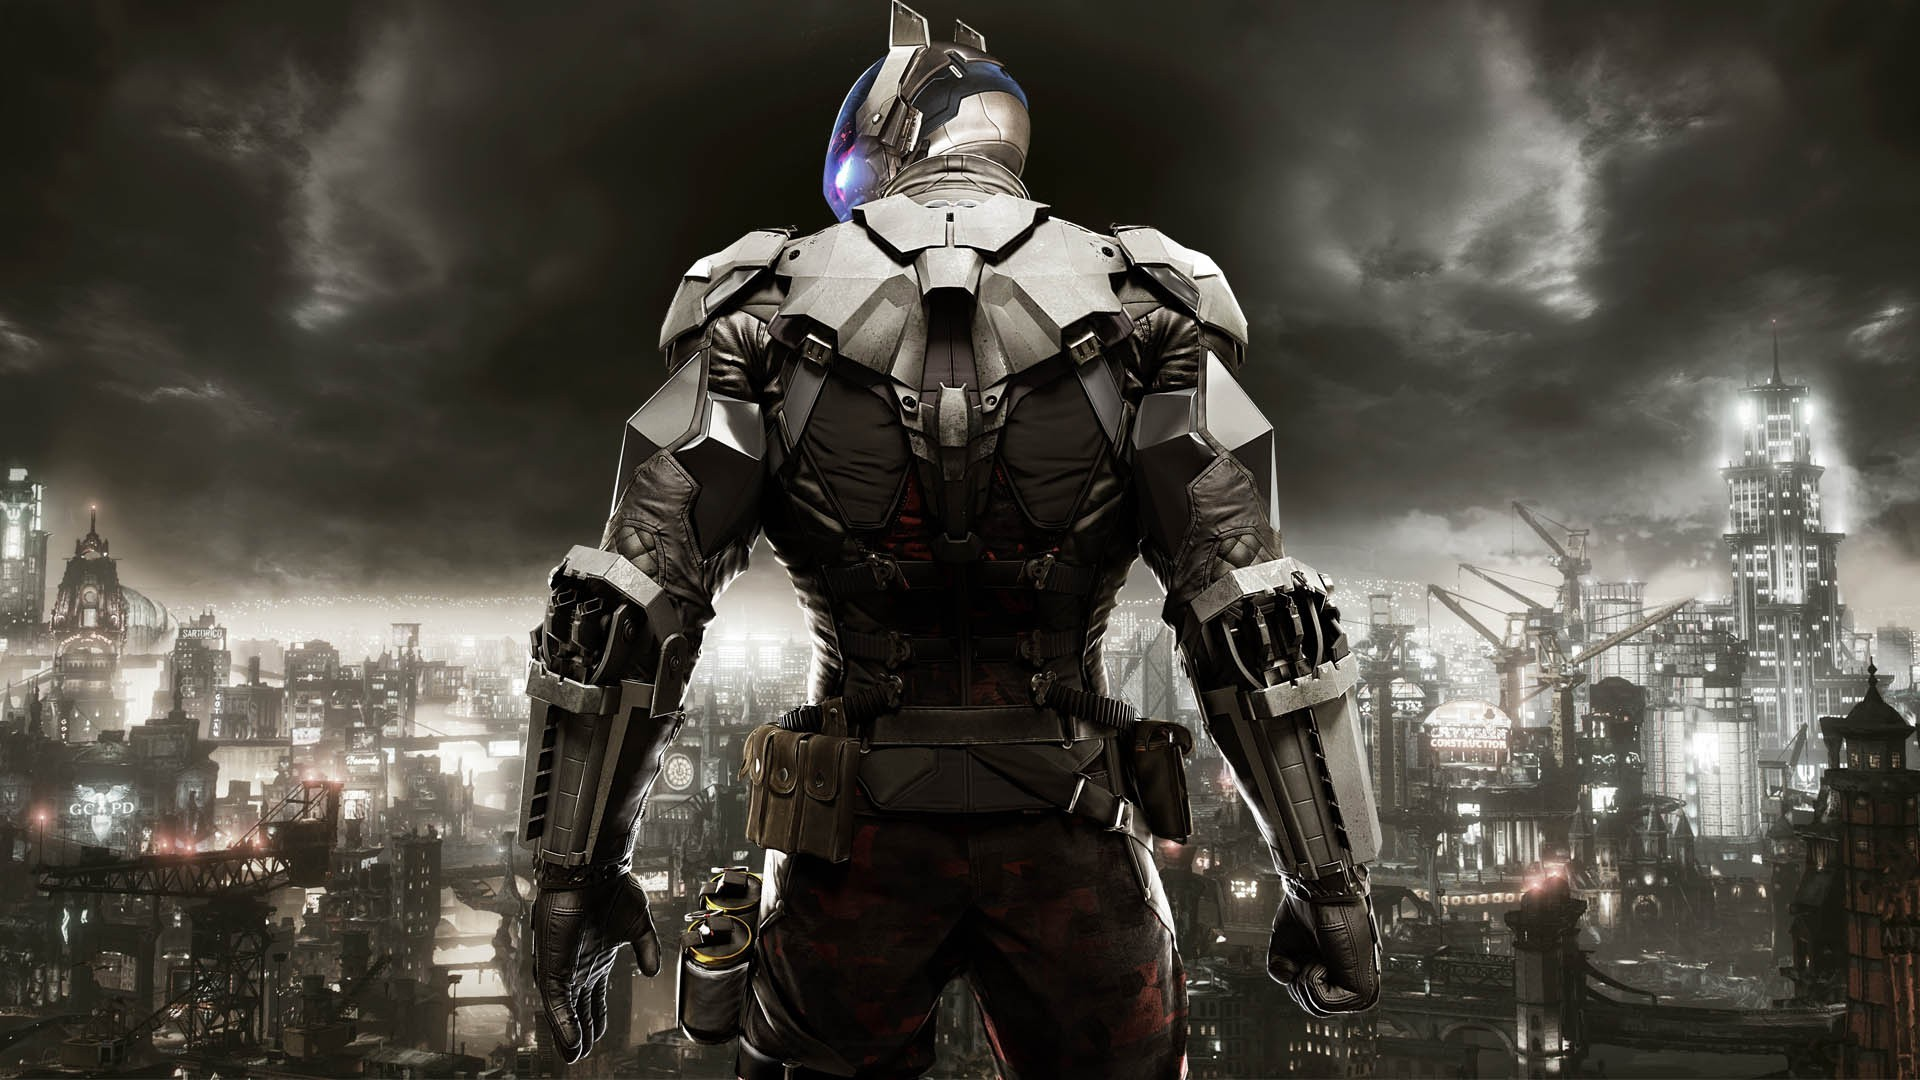 Cute Arkham Knight Wallpaper Cool Images XP12